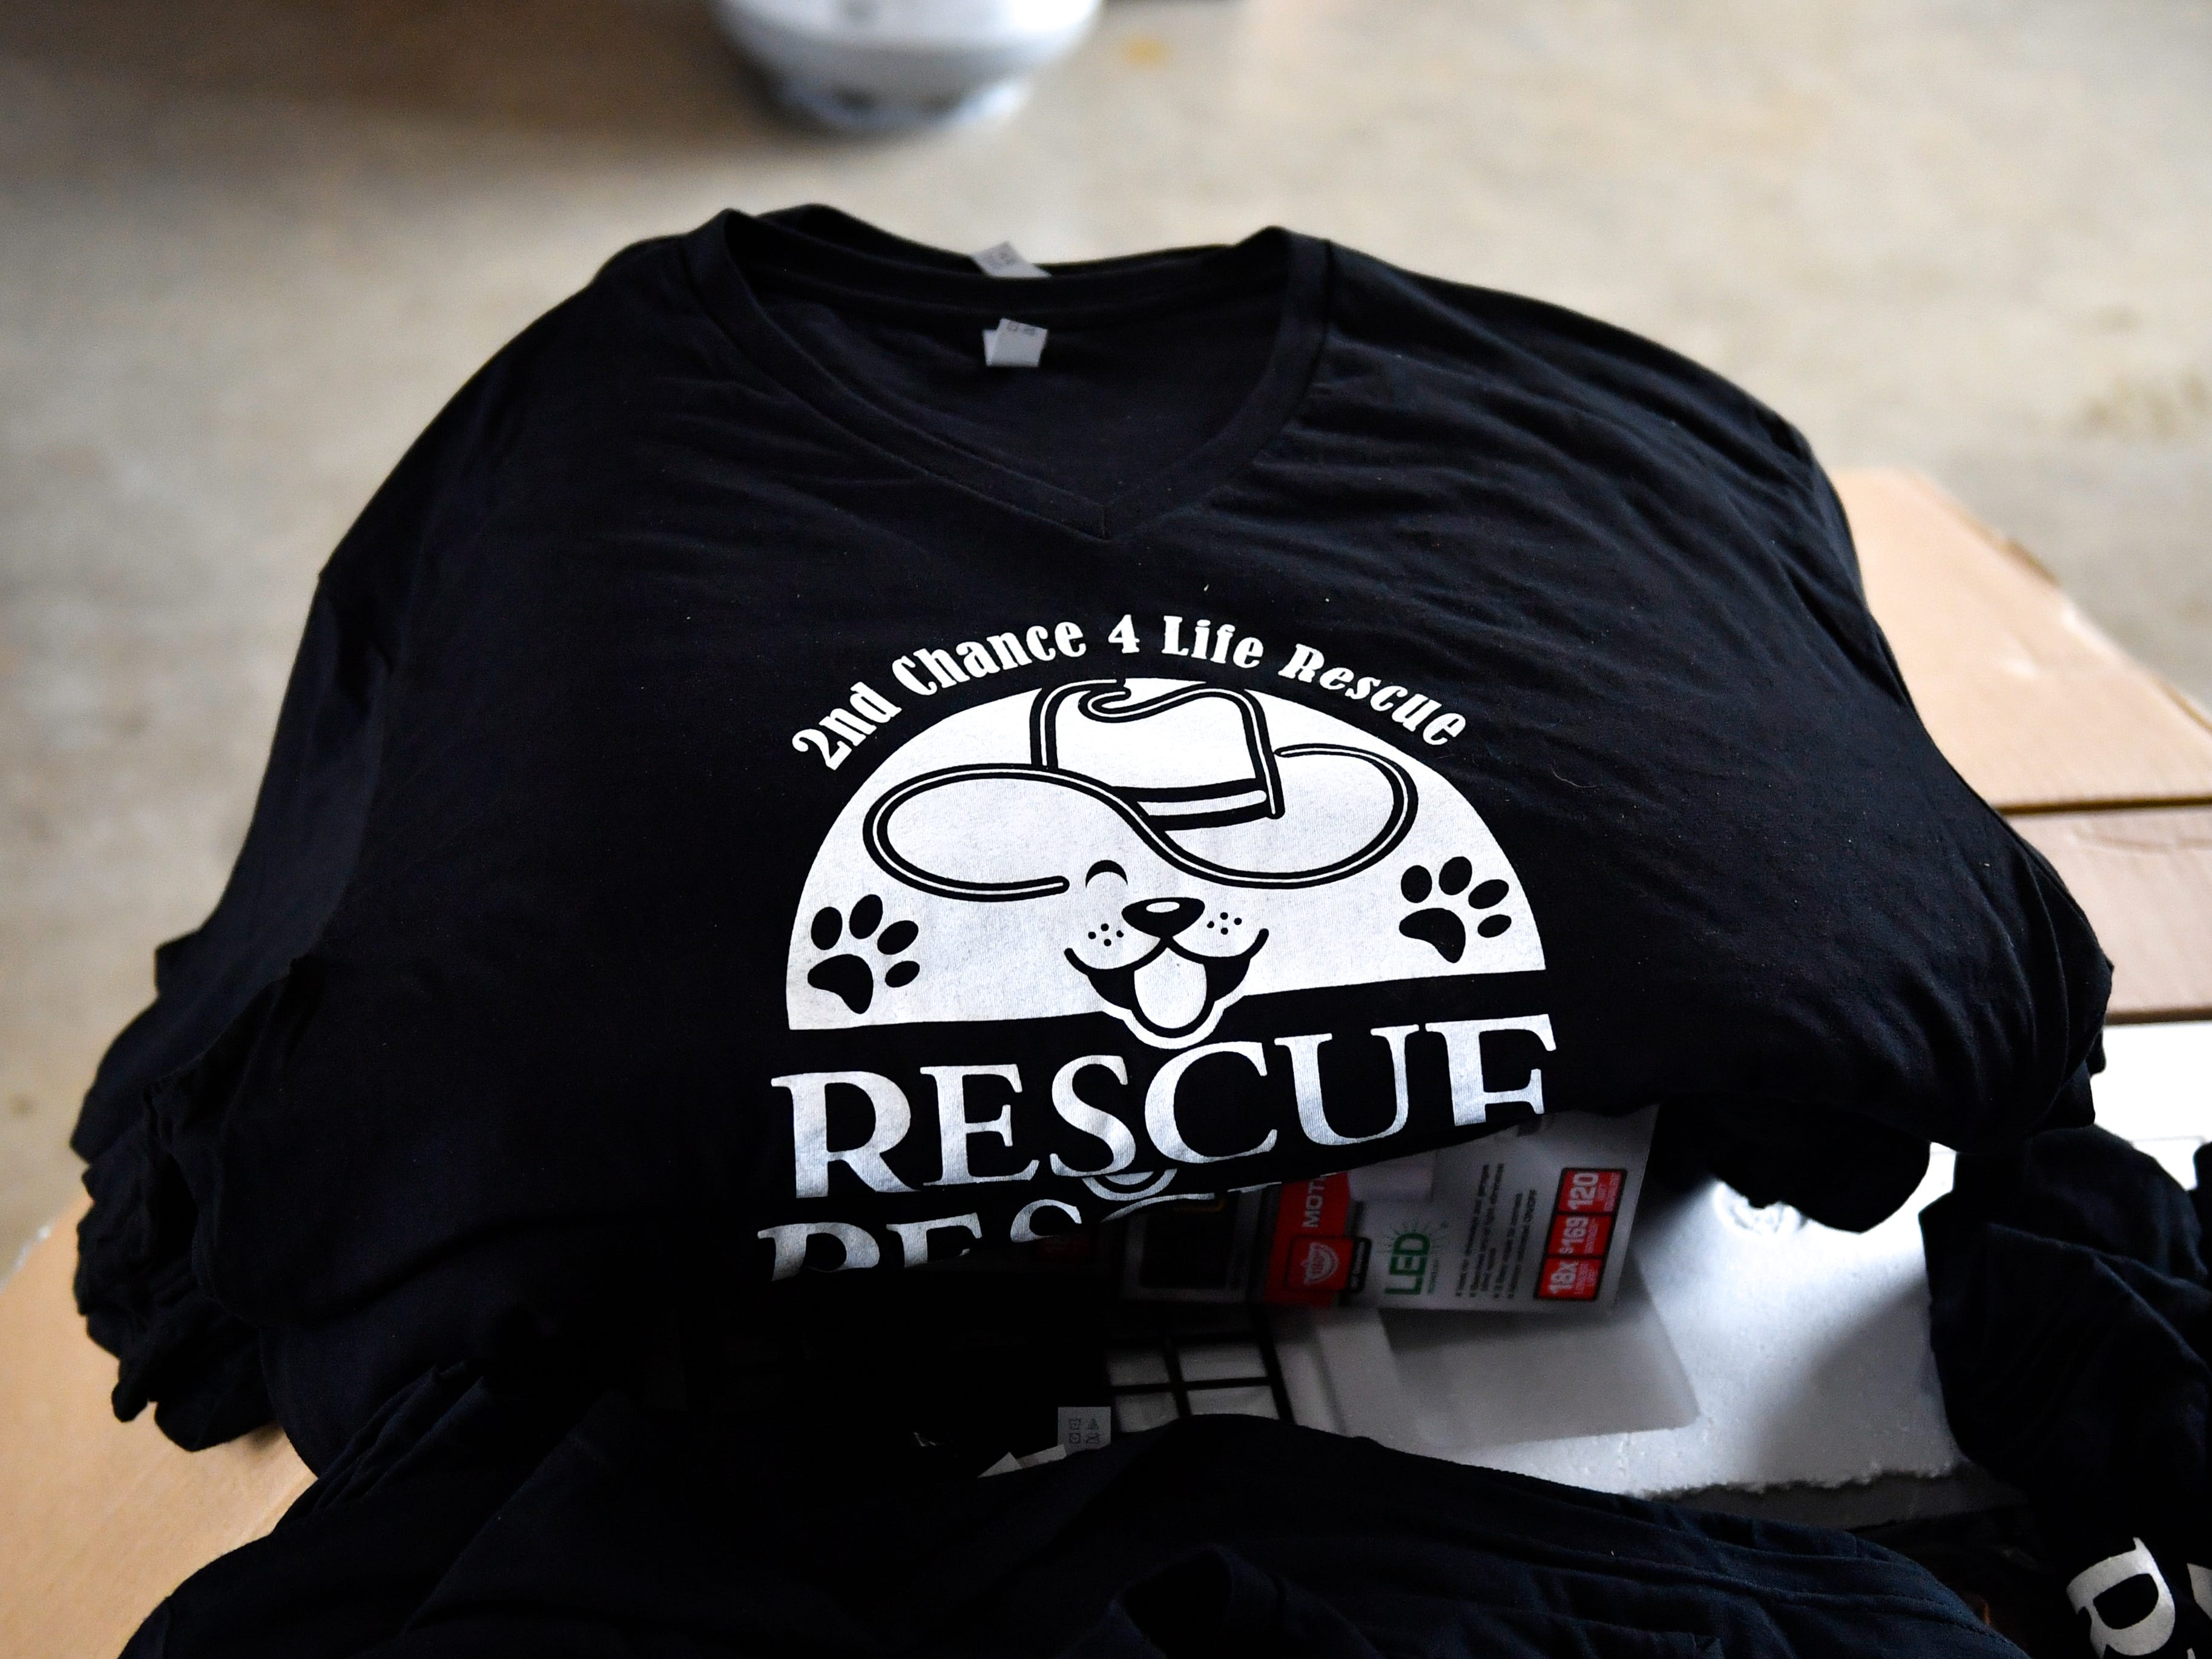 All volunteers wear Rescue Ranch T-shirts to help get the word out, November 2, 2018.